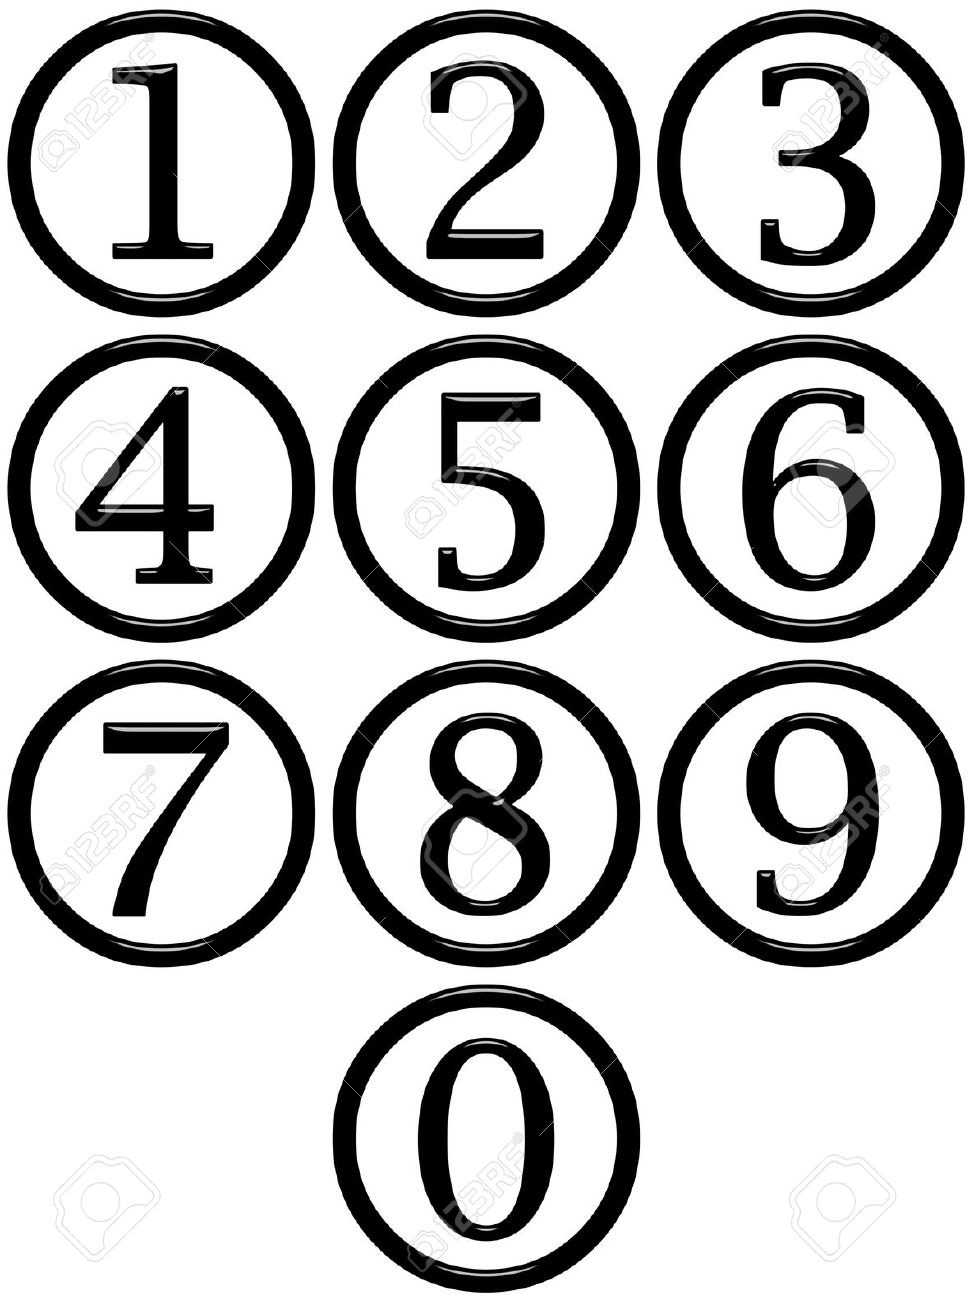 Number Clip Art Black And White.